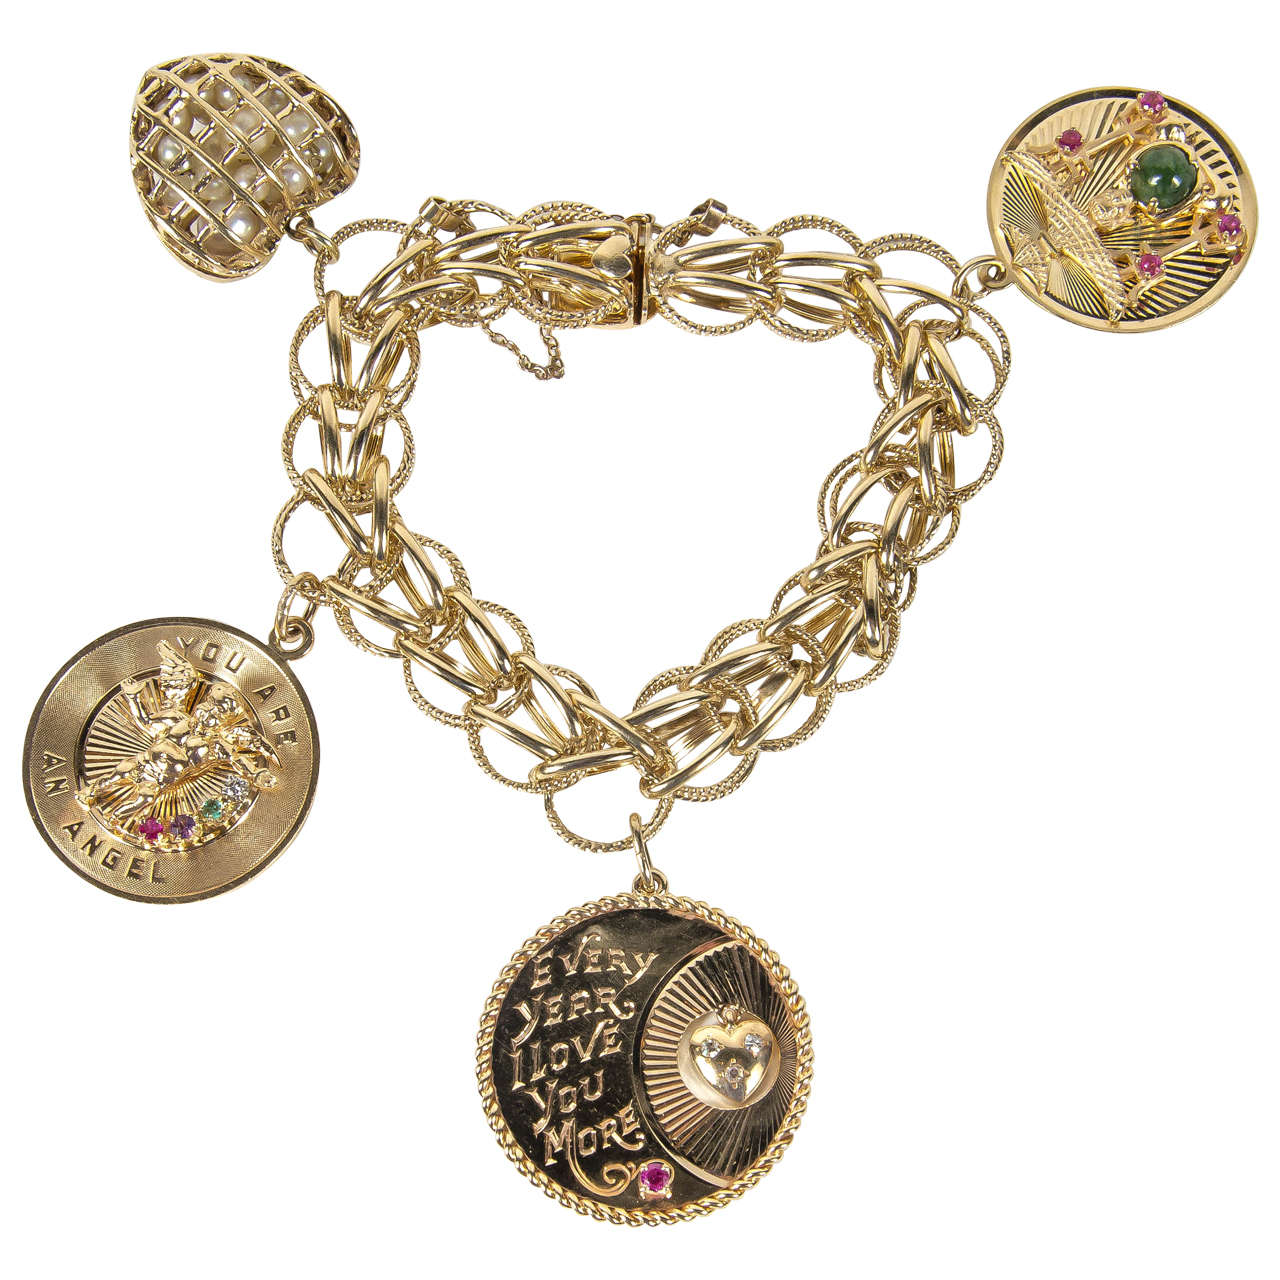 1950s Gold Multi Charm Bracelet With Cartier Charm At 1stdibs